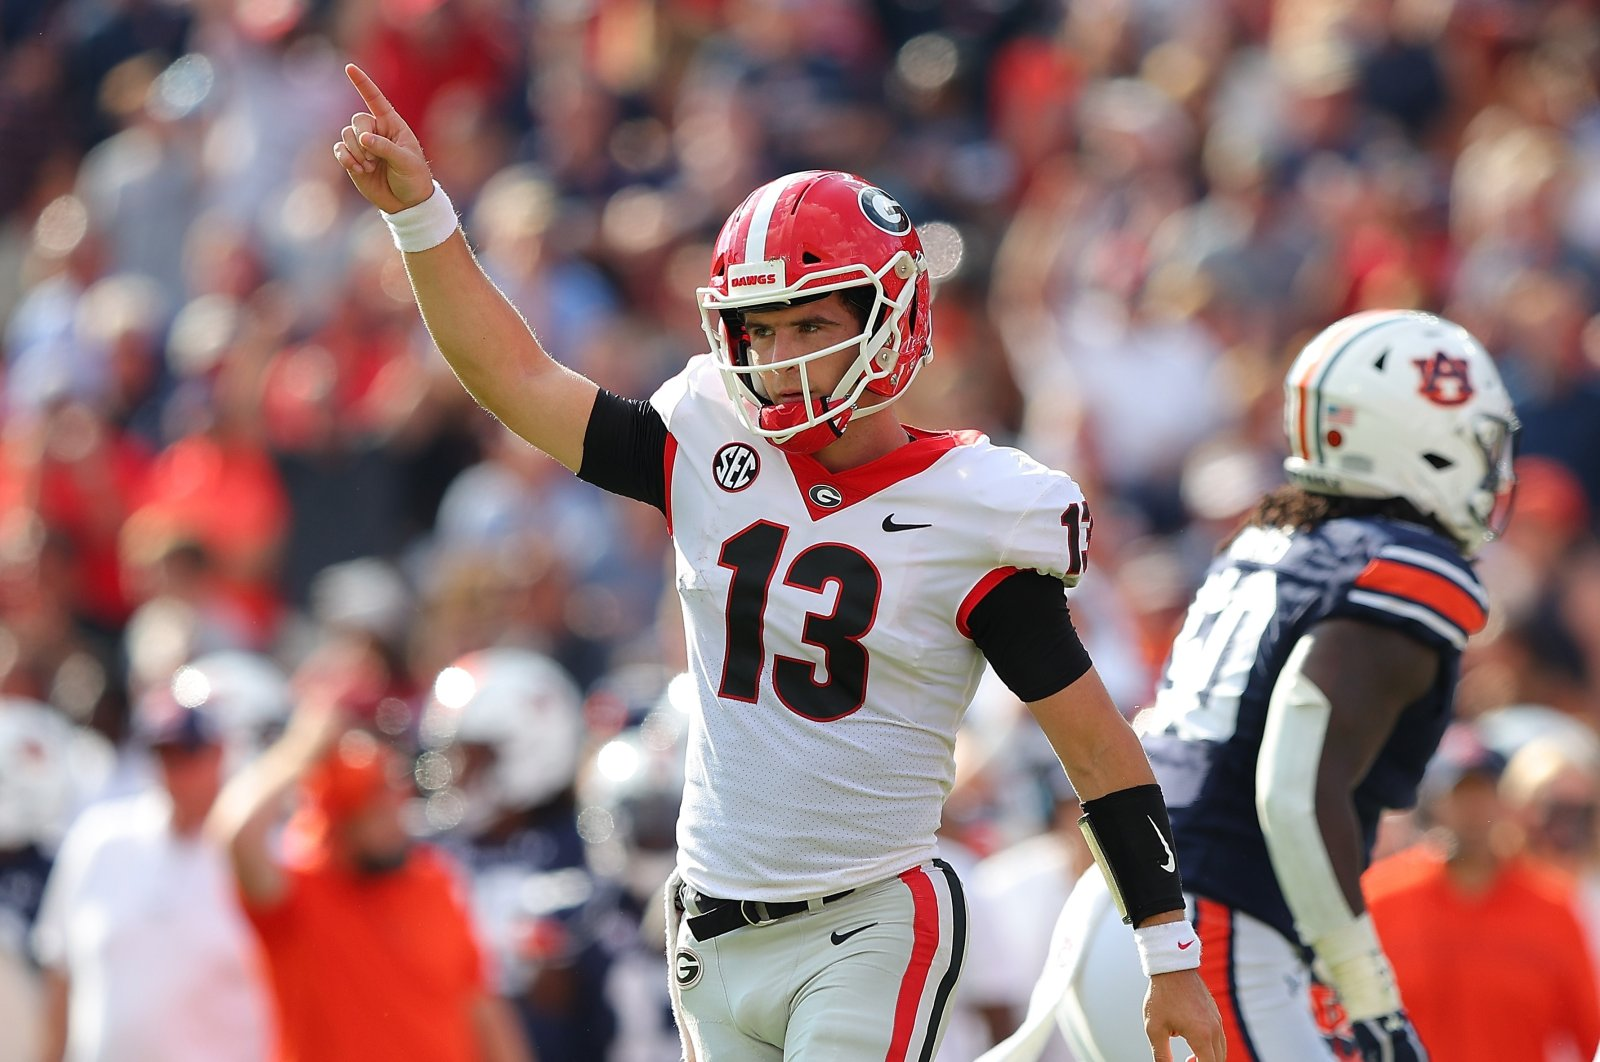 Stetson Bennett (13) of the Georgia Bulldogs reacts after a touchdown against the Auburn Tigers during the first half at Jordan-Hare Stadium, Auburn, Alabama, U.S., Oct. 9, 2021.(AFP Photo)